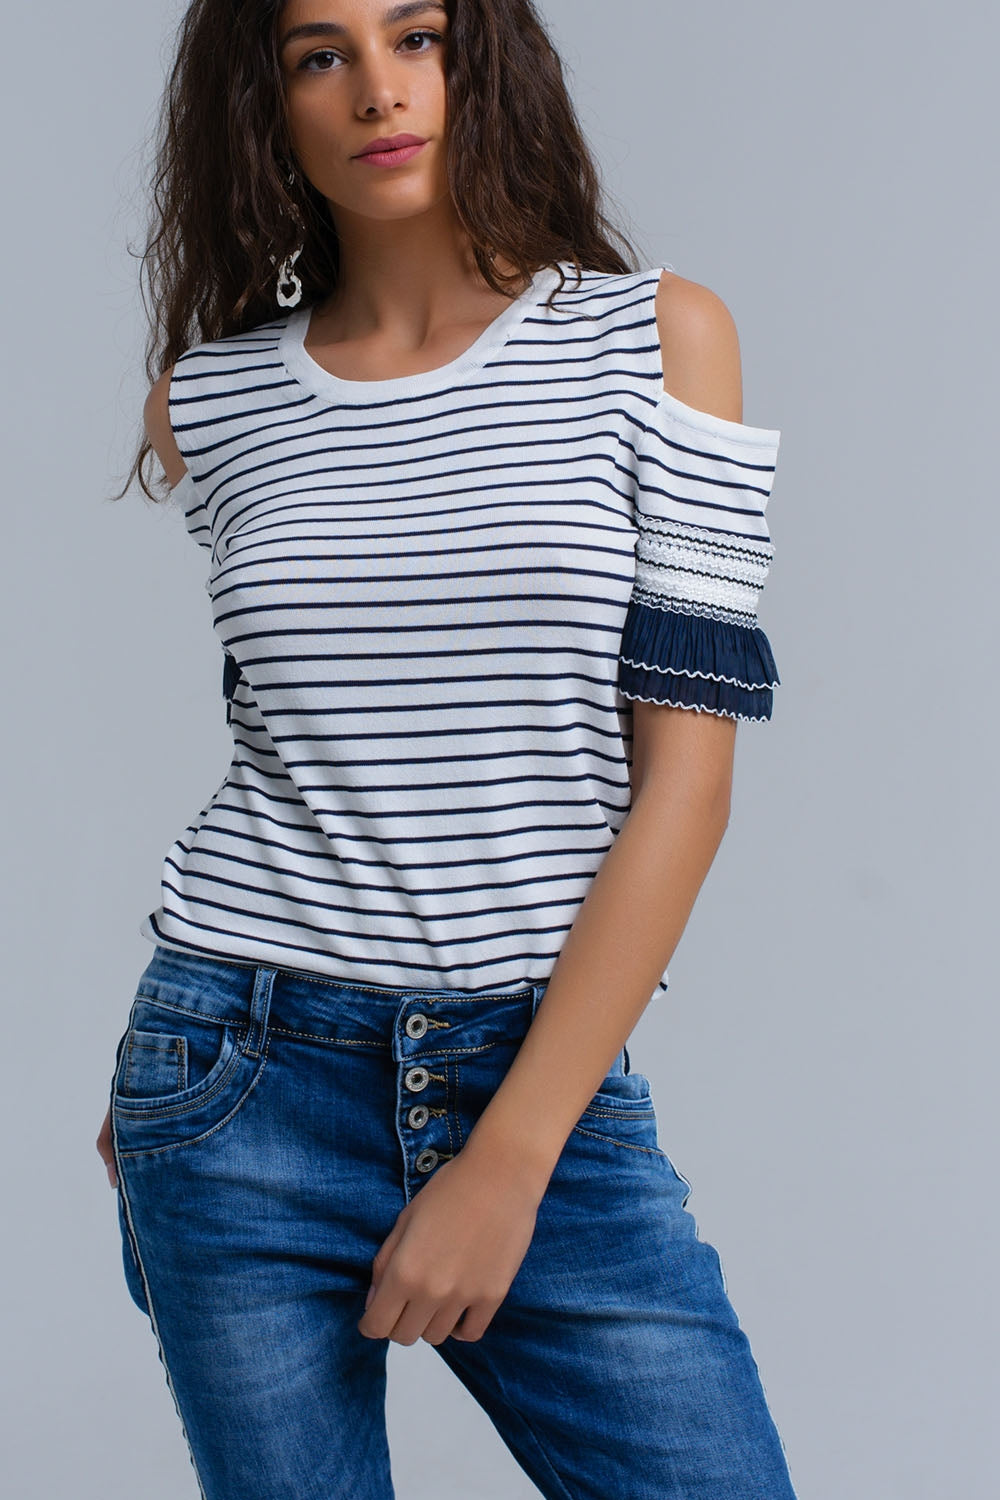 Navy Striped Sweater With Embroidery - CalicoMarket